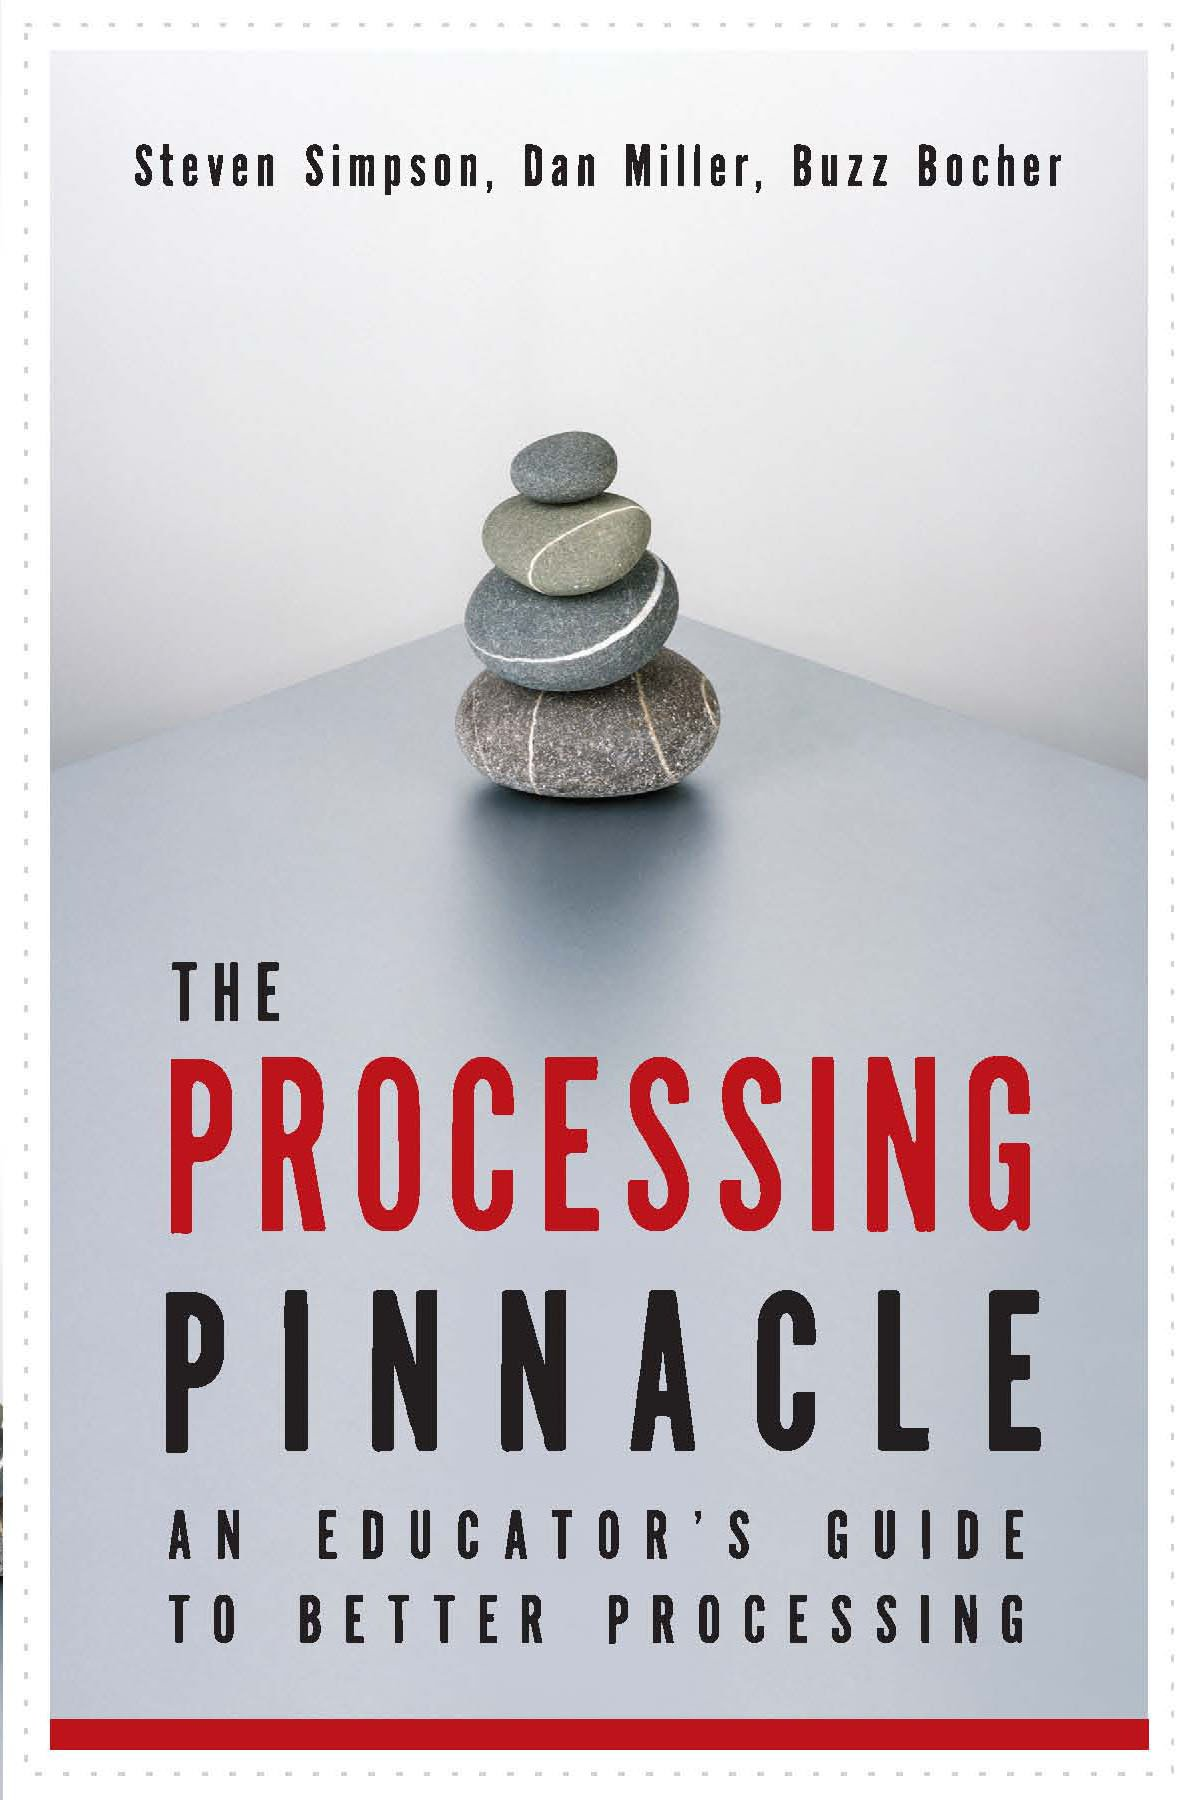 Buy The Processing Pinnacle An Educators Guide To Better Axis Gaul Book Online At Low Prices In India